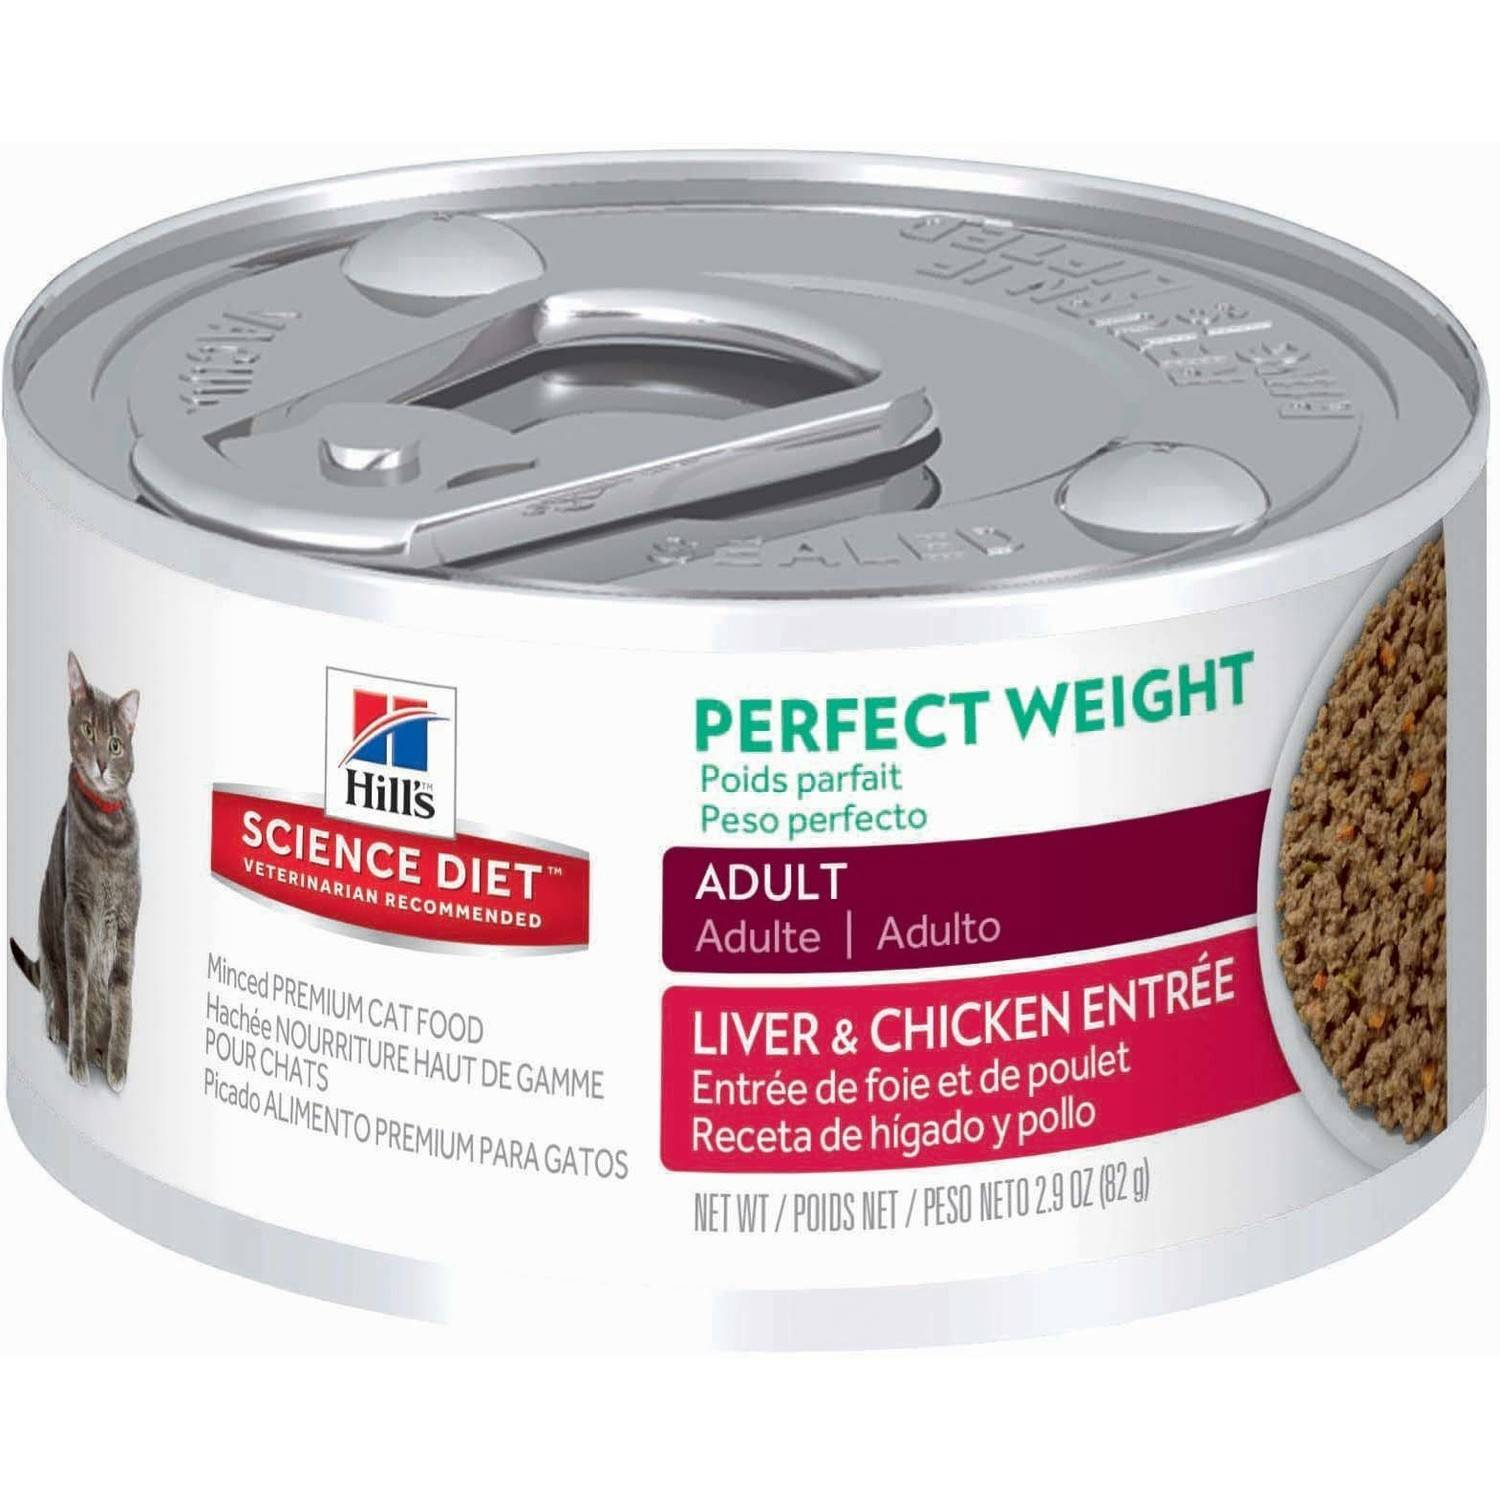 Hill's Science Diet (Get $5 back for every $20 spent) Adult Perfect Weight Liver & Chicken Entrée Canned Cat Food, 2.9 oz, 24-pack